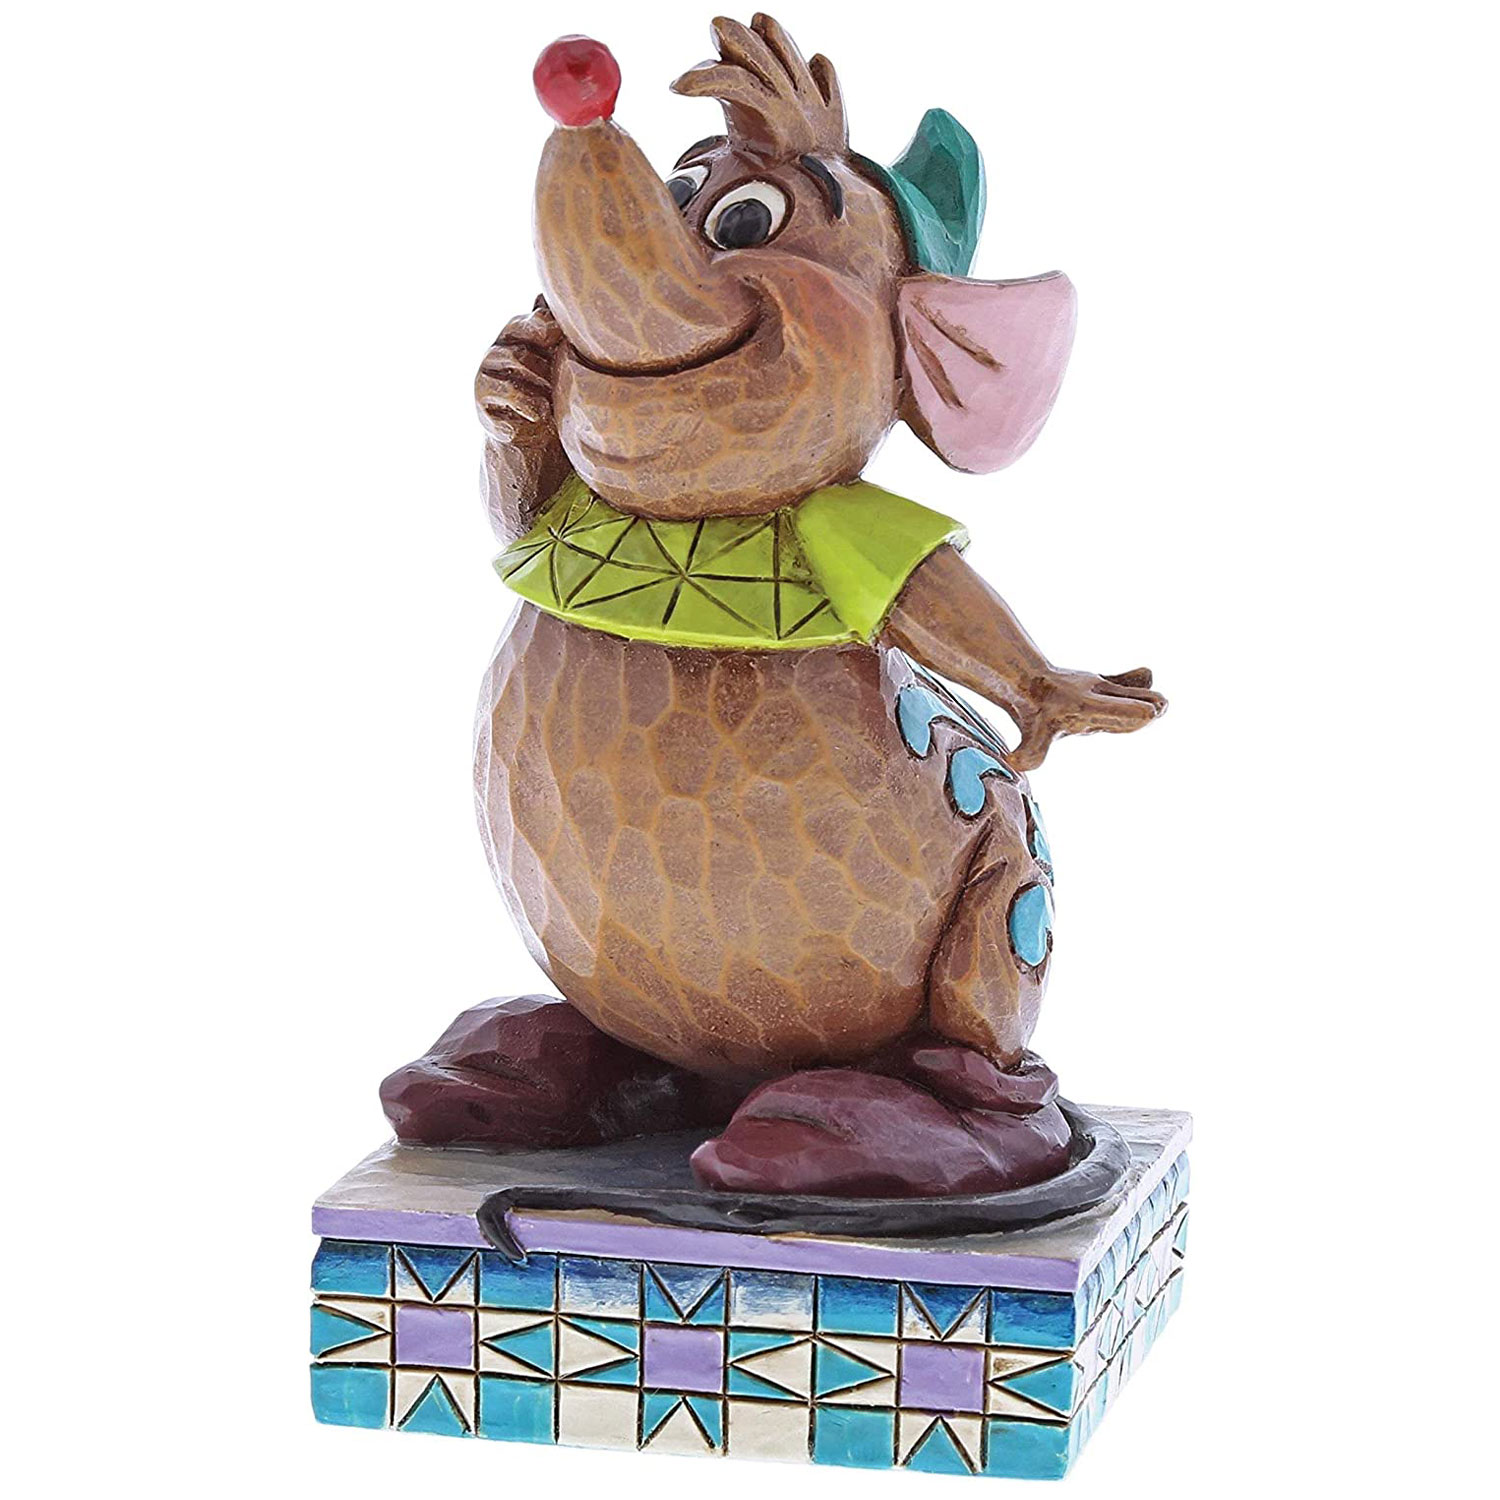 Disney Traditions Figurine - Cinderelly's Friend Gus (Cinderella)